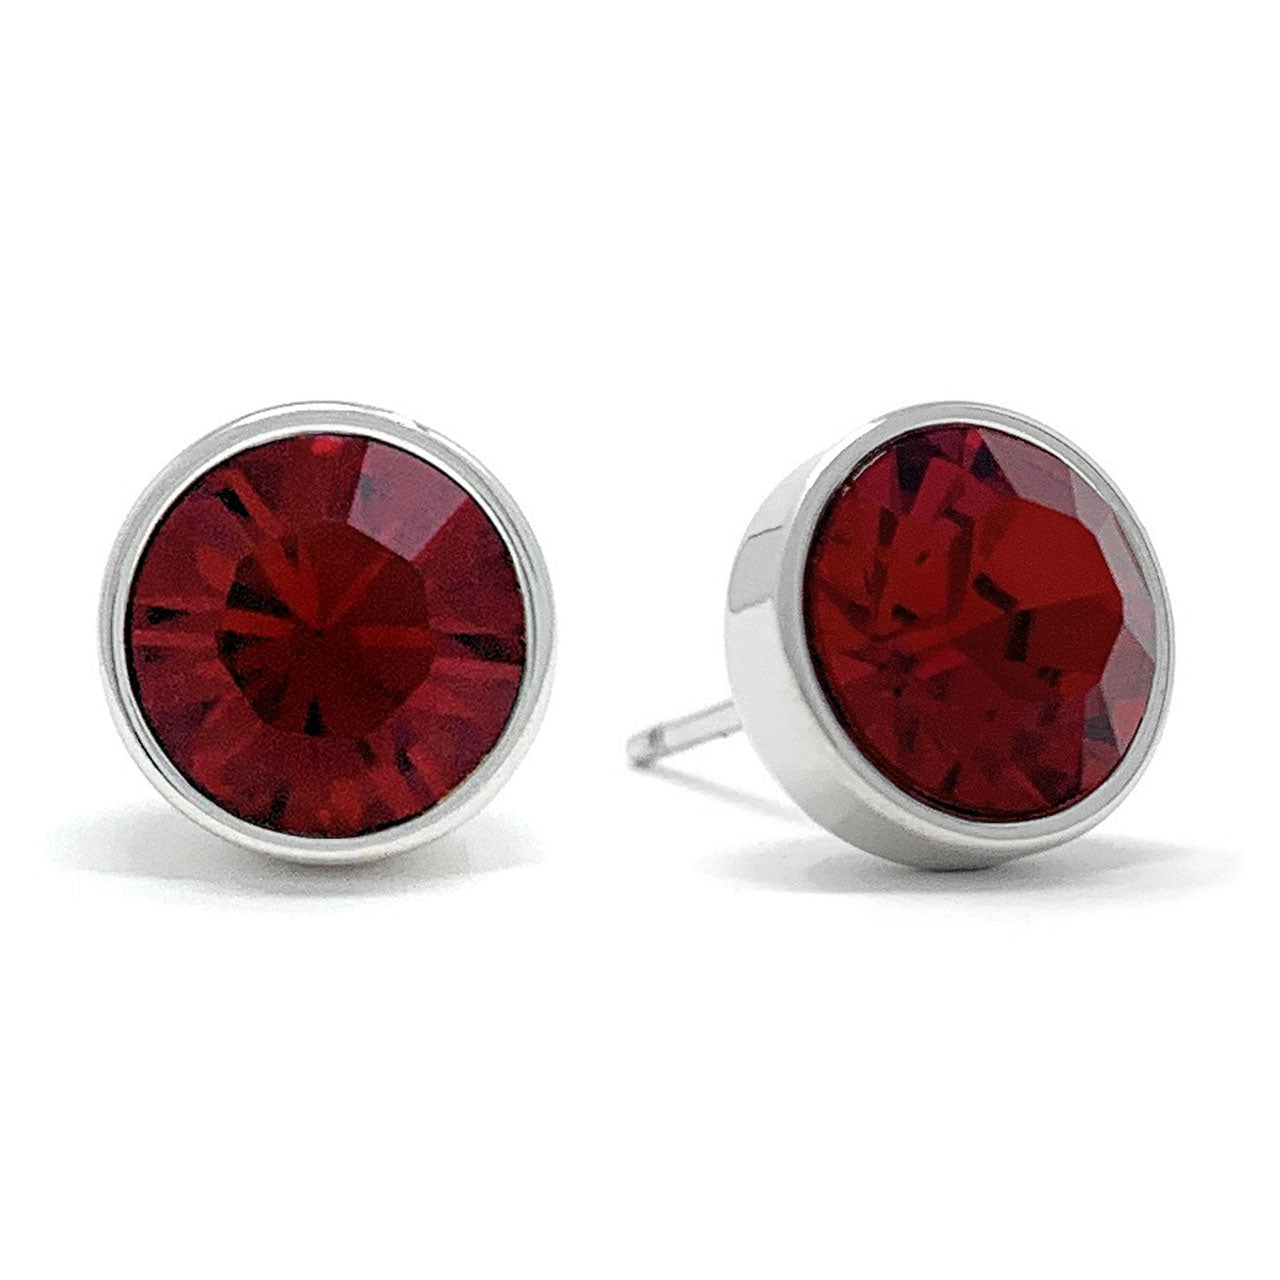 Harley Stud Earrings with Red Siam Round Crystals from Swarovski Silver Toned Rhodium Plated - Ed Heart